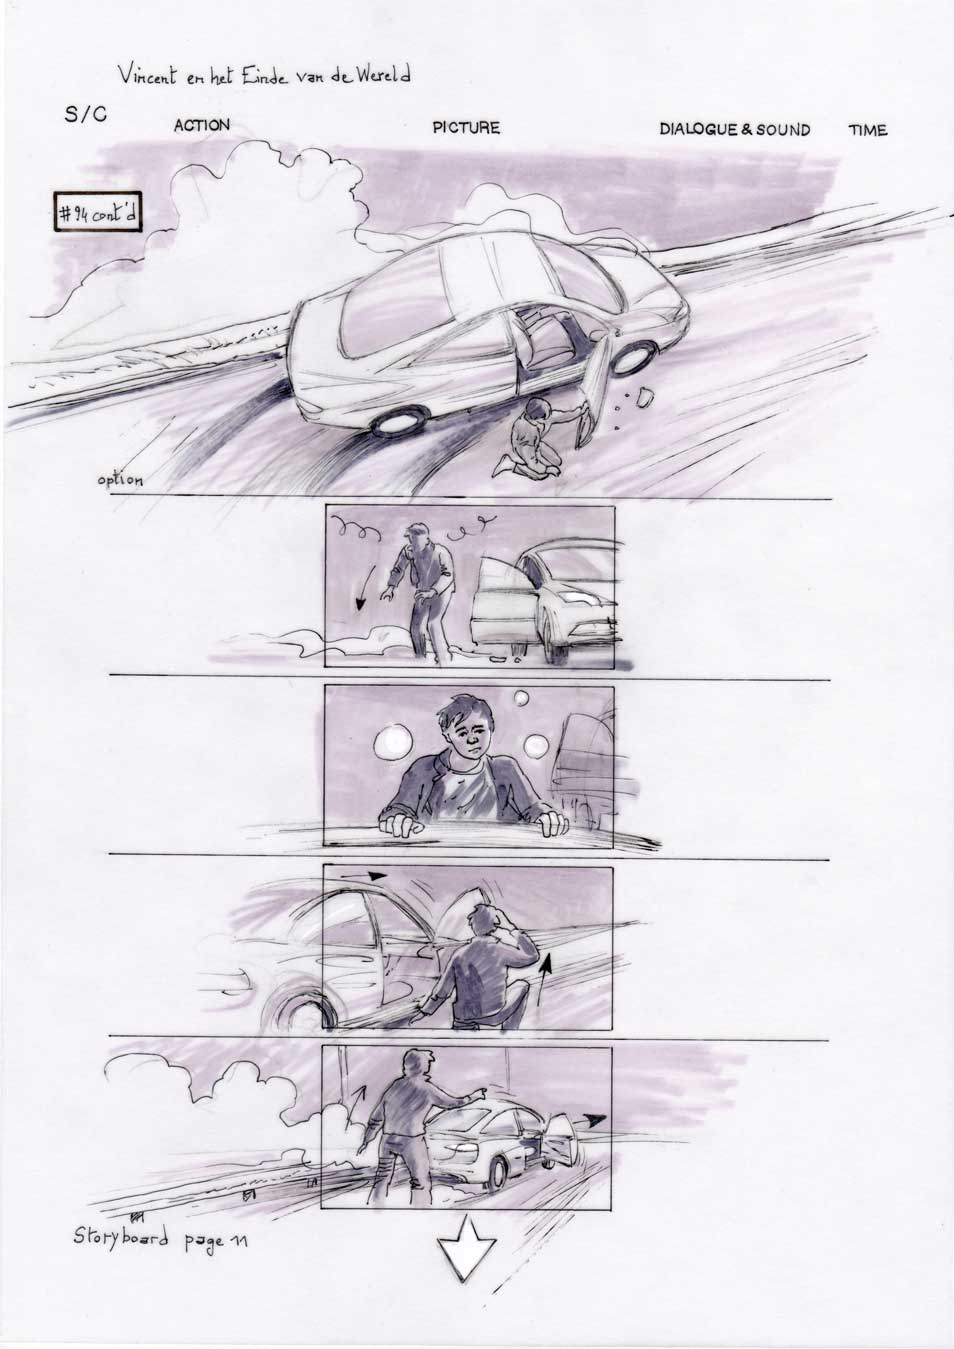 Vincent and the End of the World storyboard 11